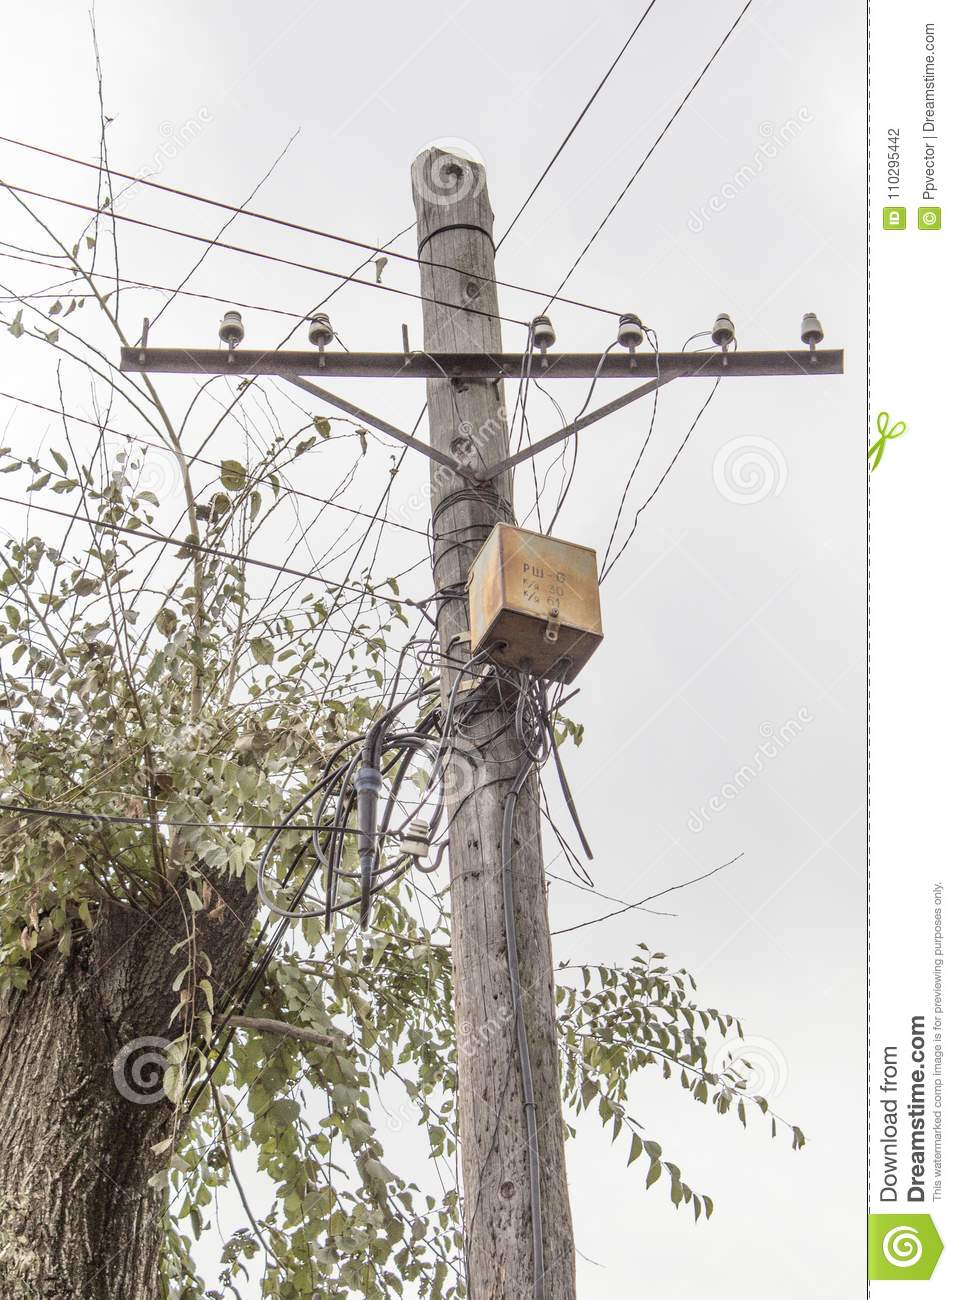 hight resolution of rusty electrical junction box on an old wooden post electric pole wooden pole